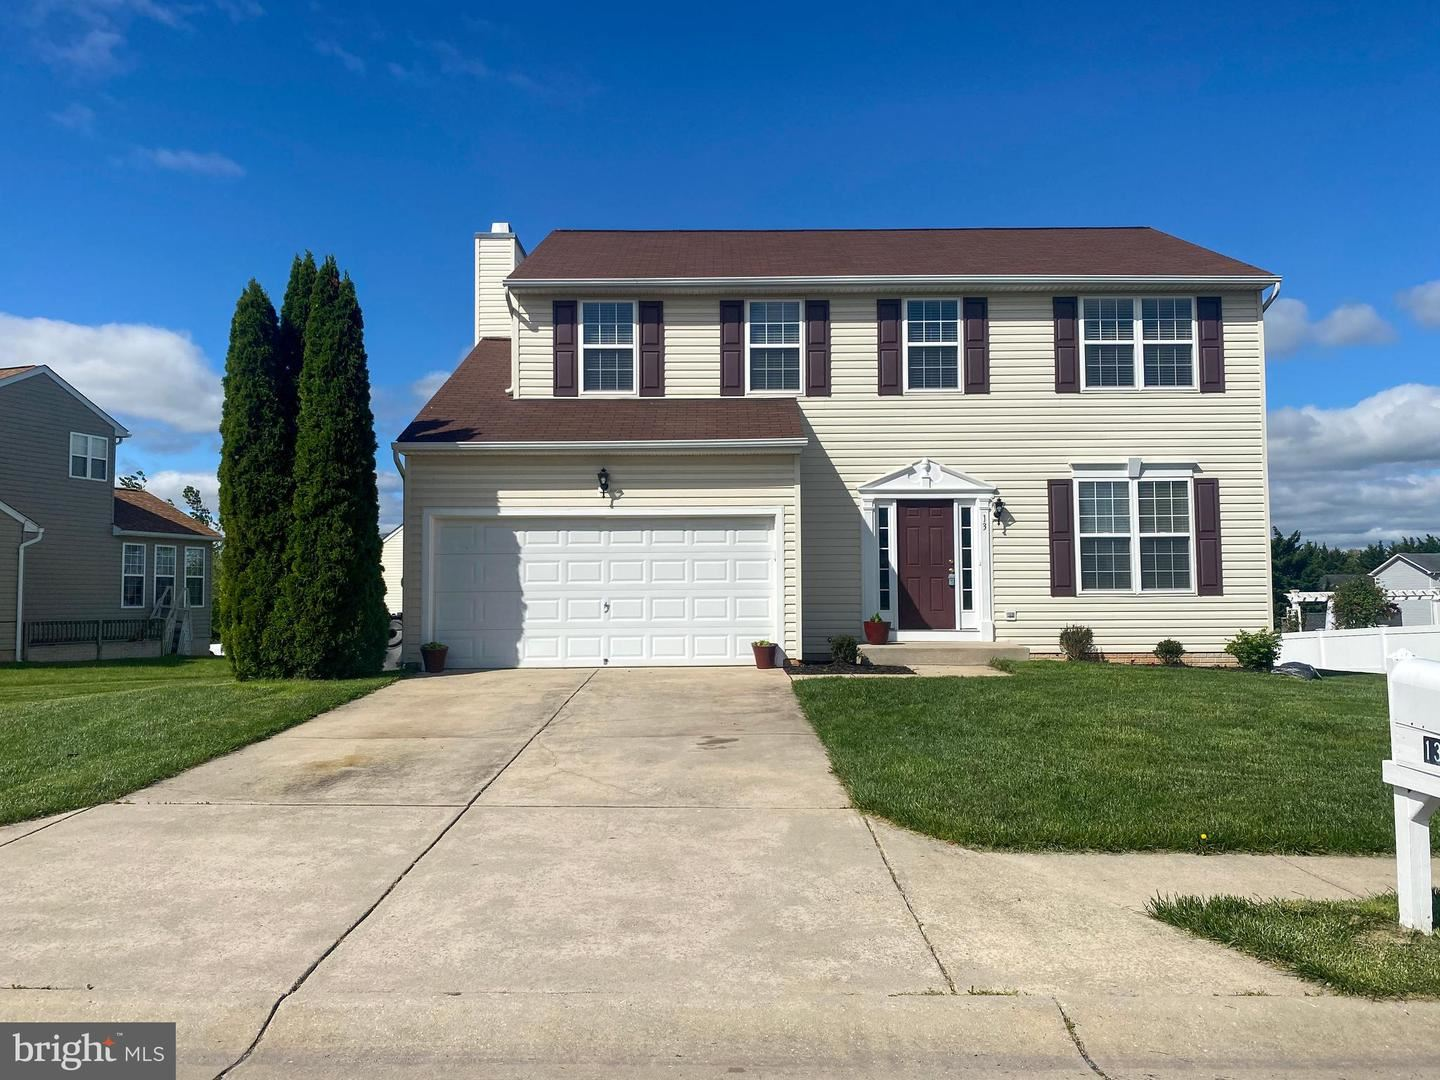 13 KWANZAN ST, Taneytown, MD 21787 - MLS#: MDCR2000034